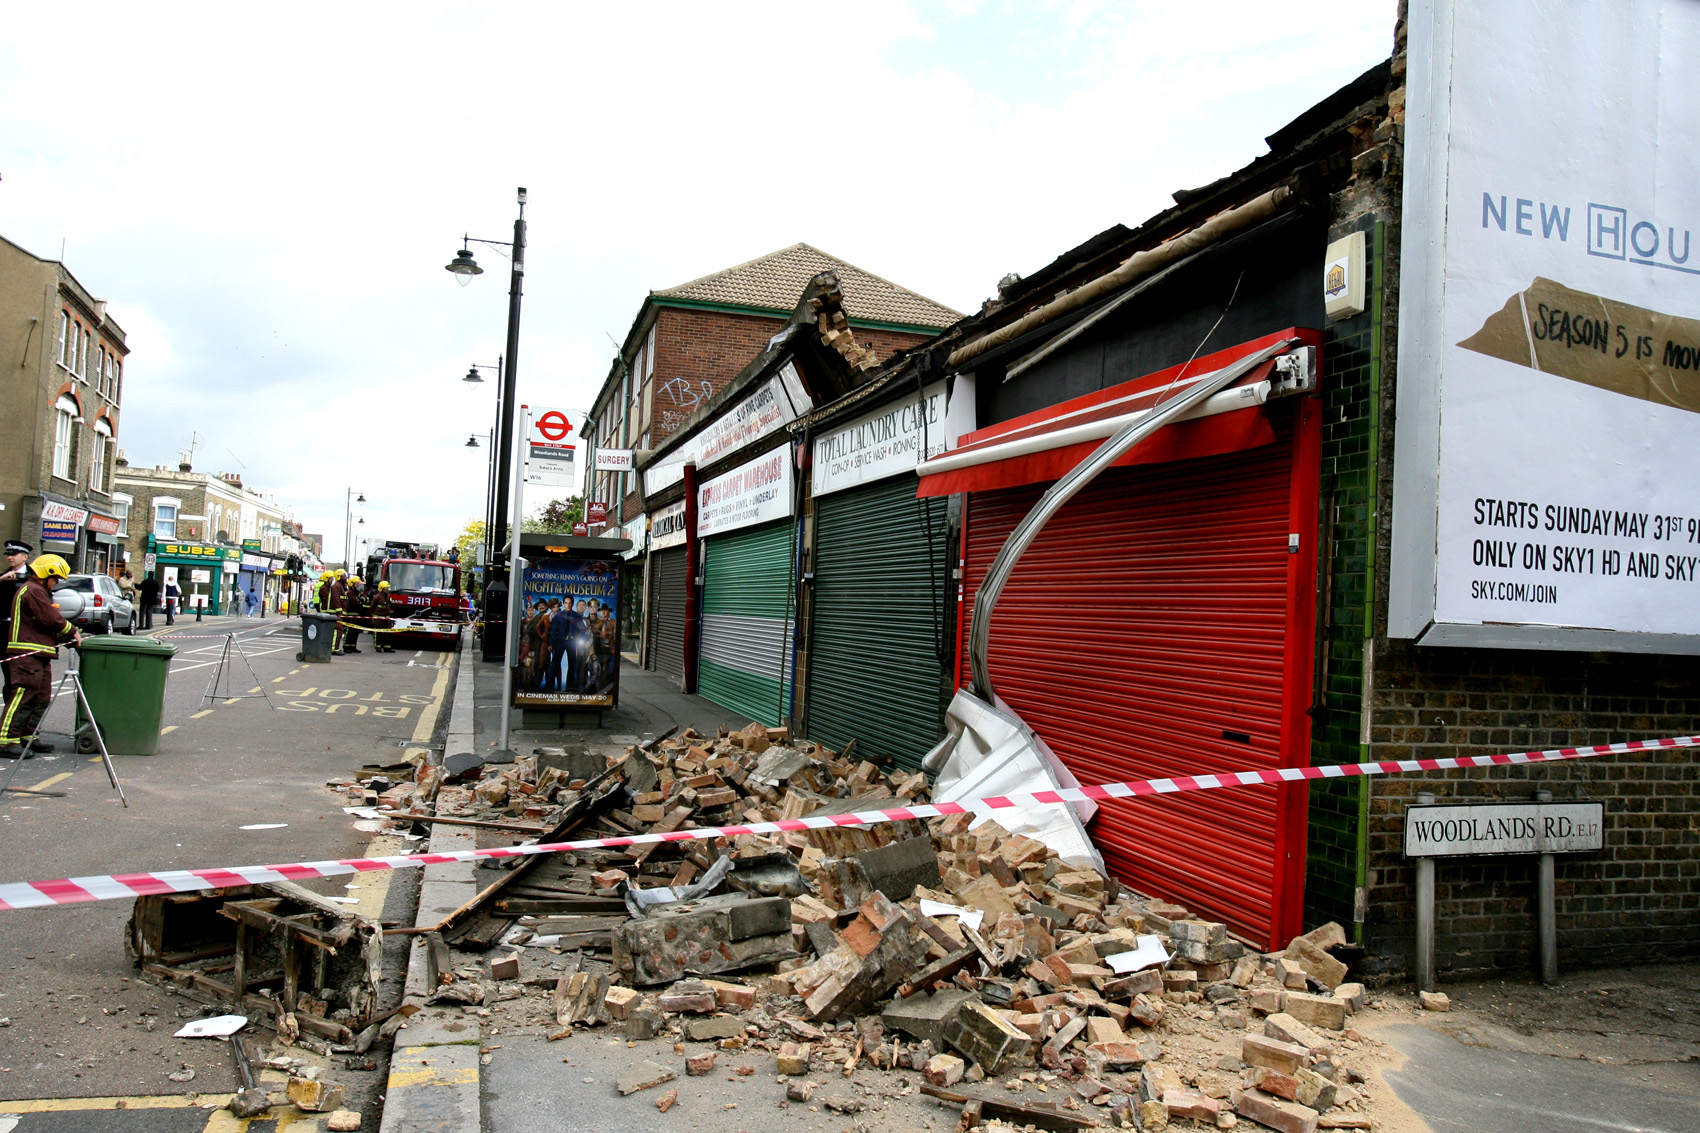 WALTHAMSTOW: Building collapses on busy street